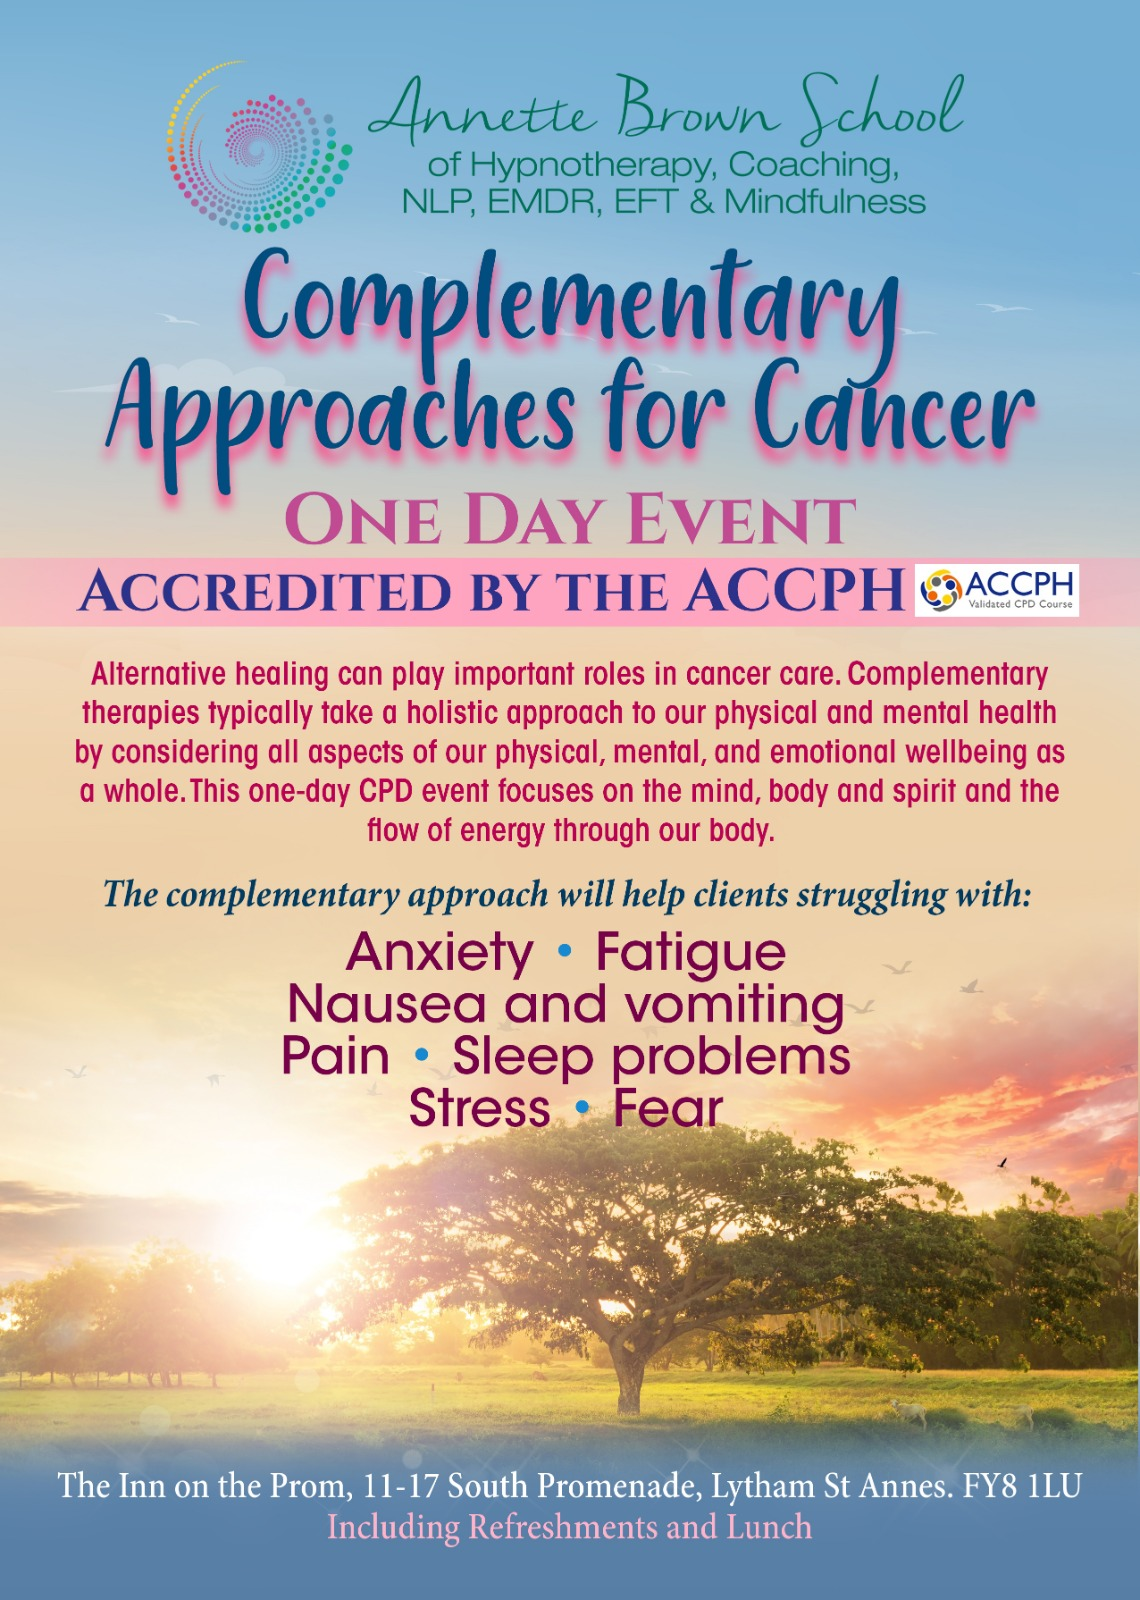 Complementary Approaches to Cancer